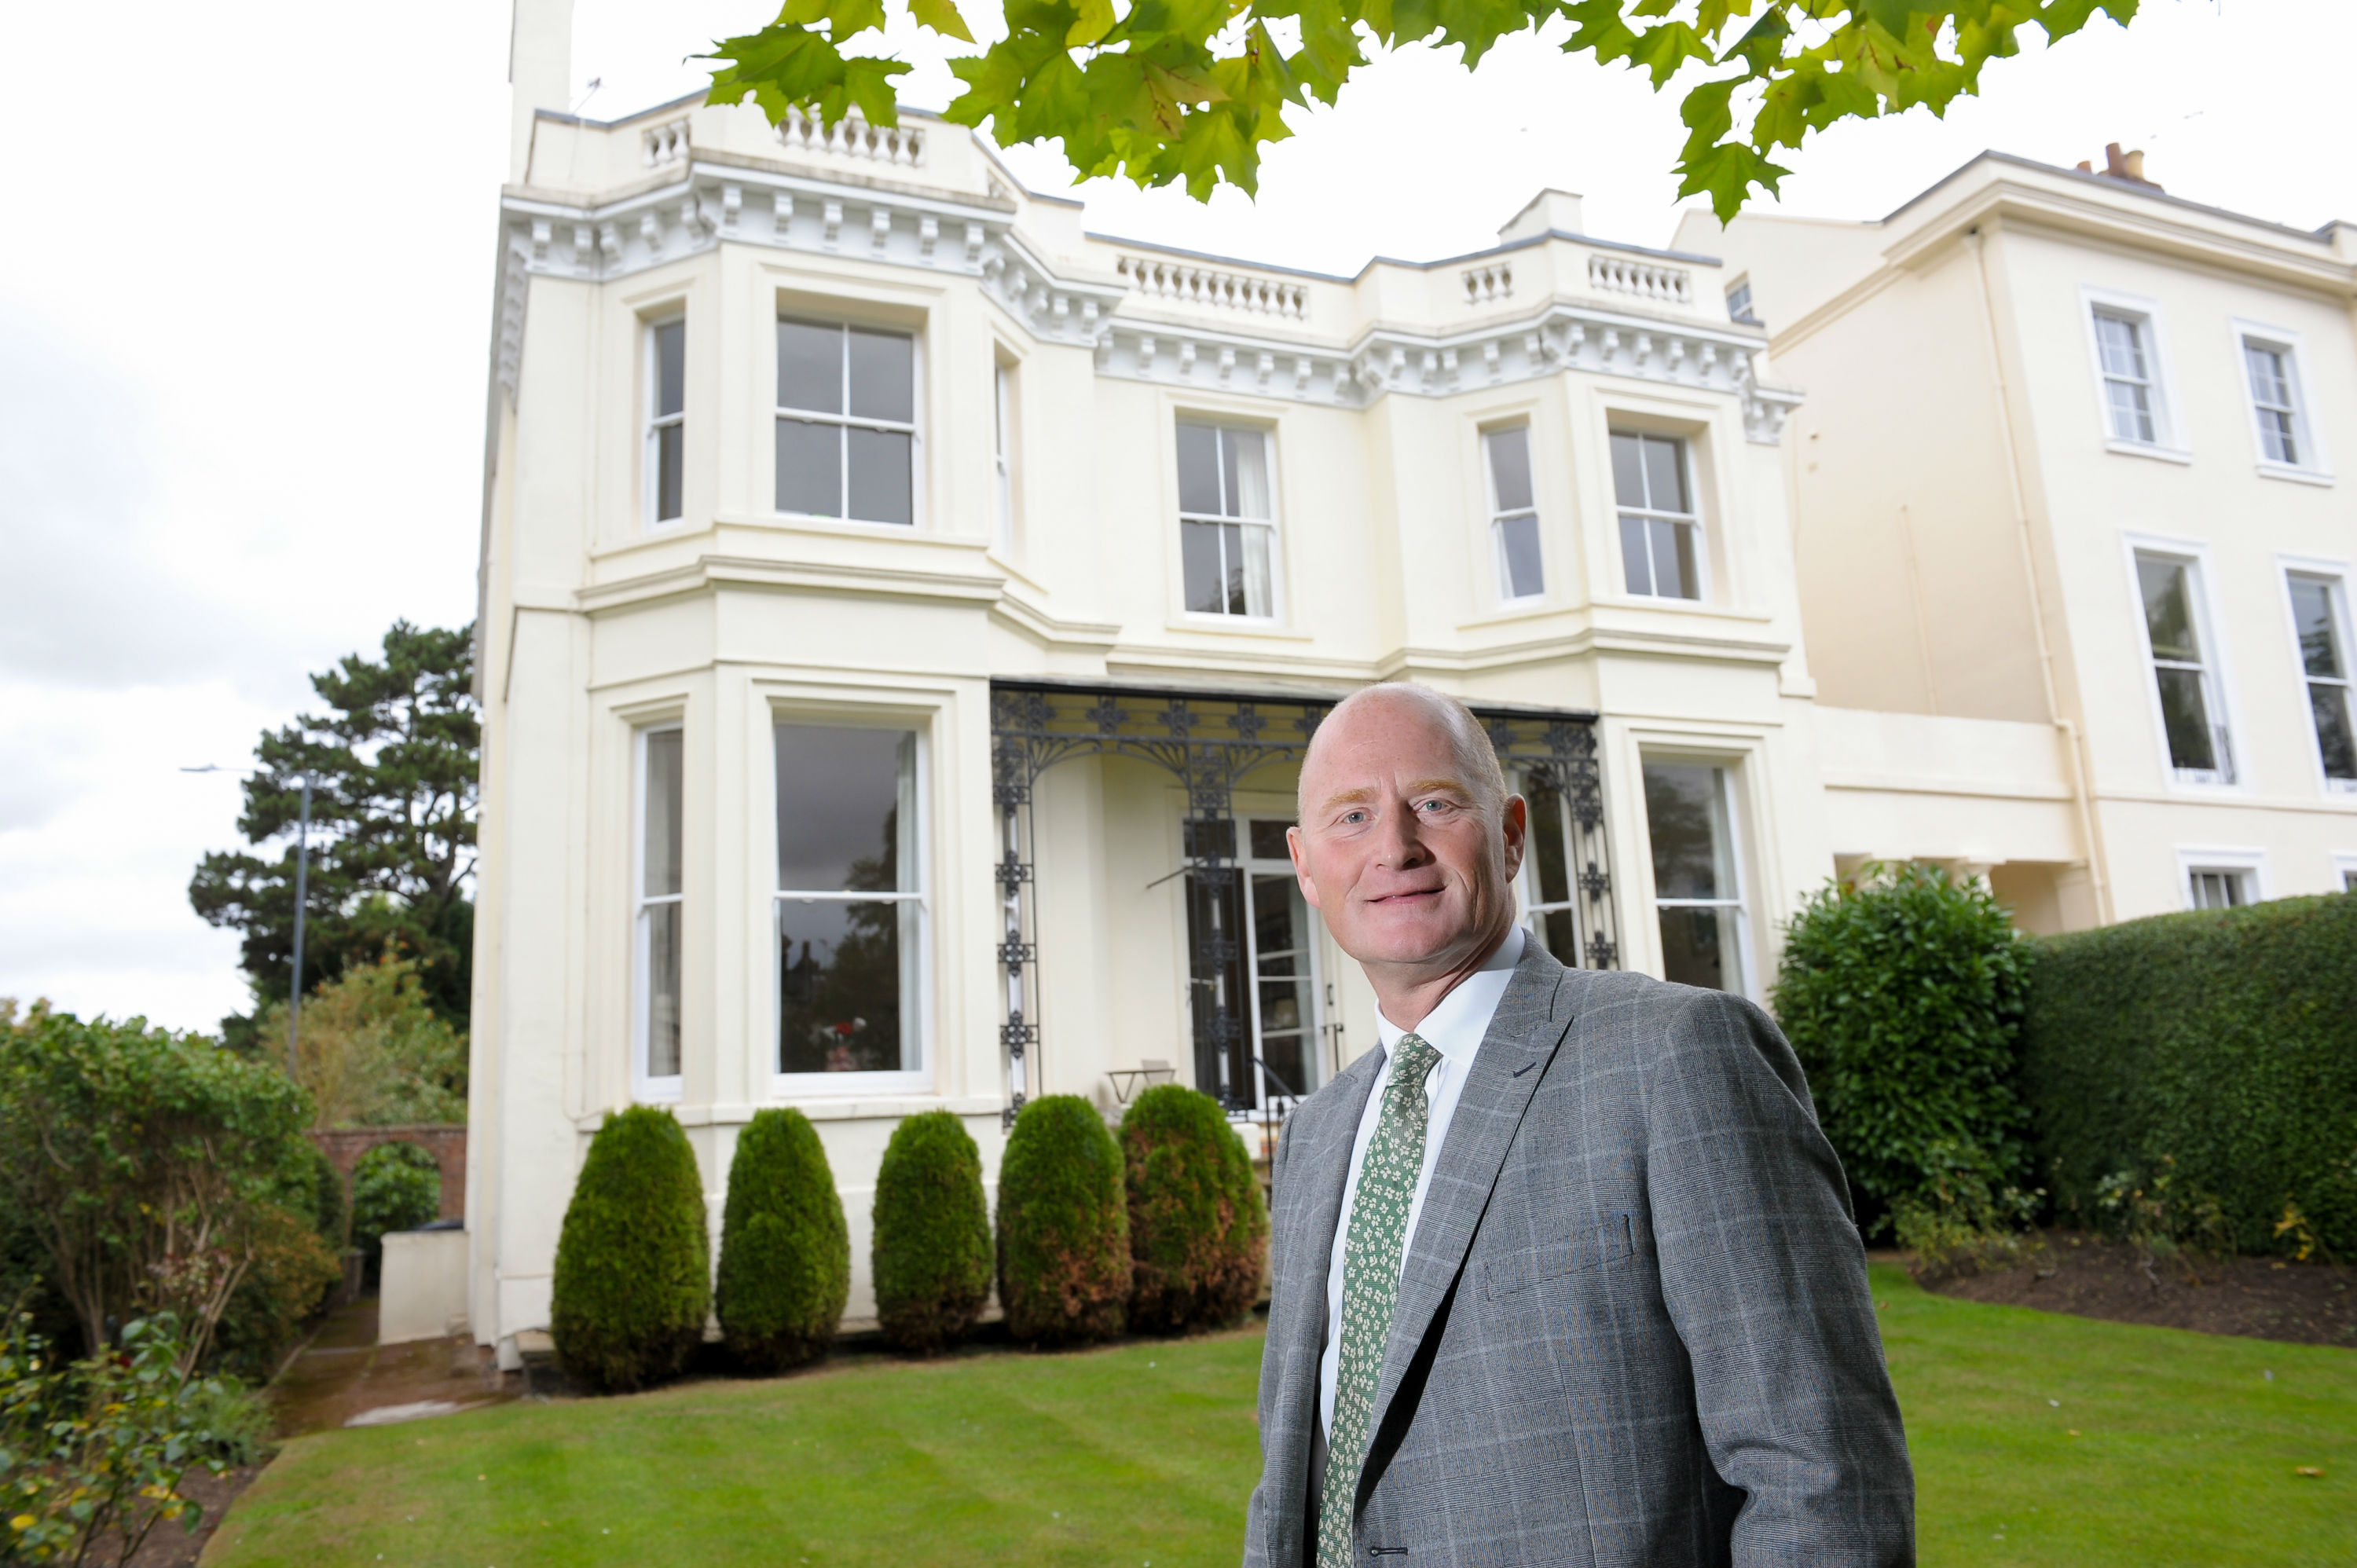 ehB Reeves offering £1.8m Regency Villa in Leamington